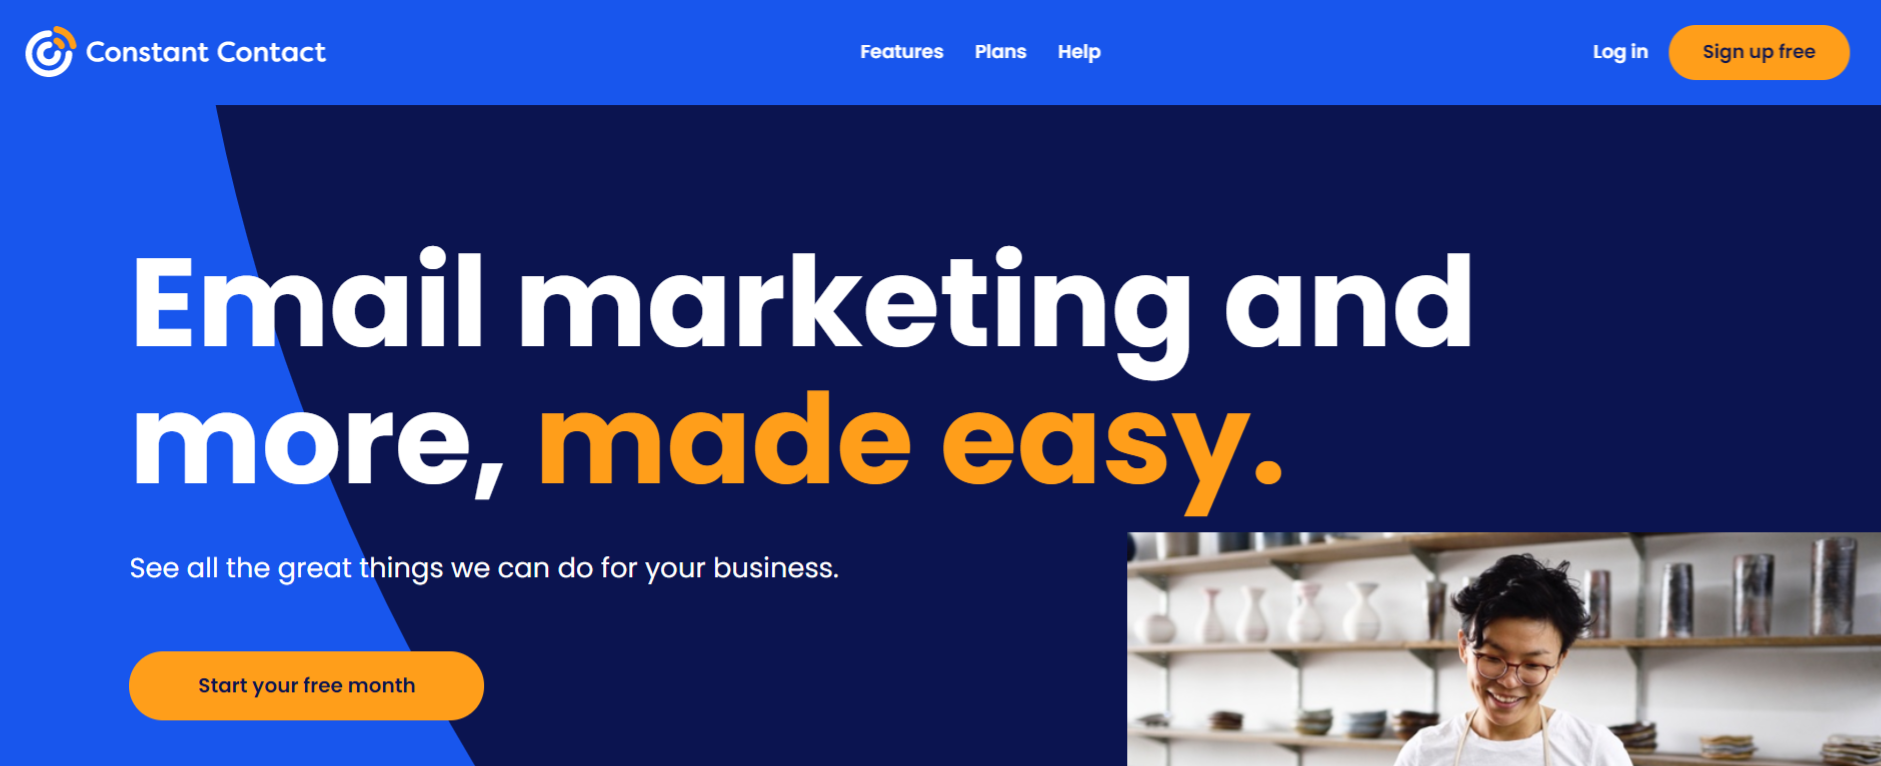 Constant contact: Online marketing automation tool